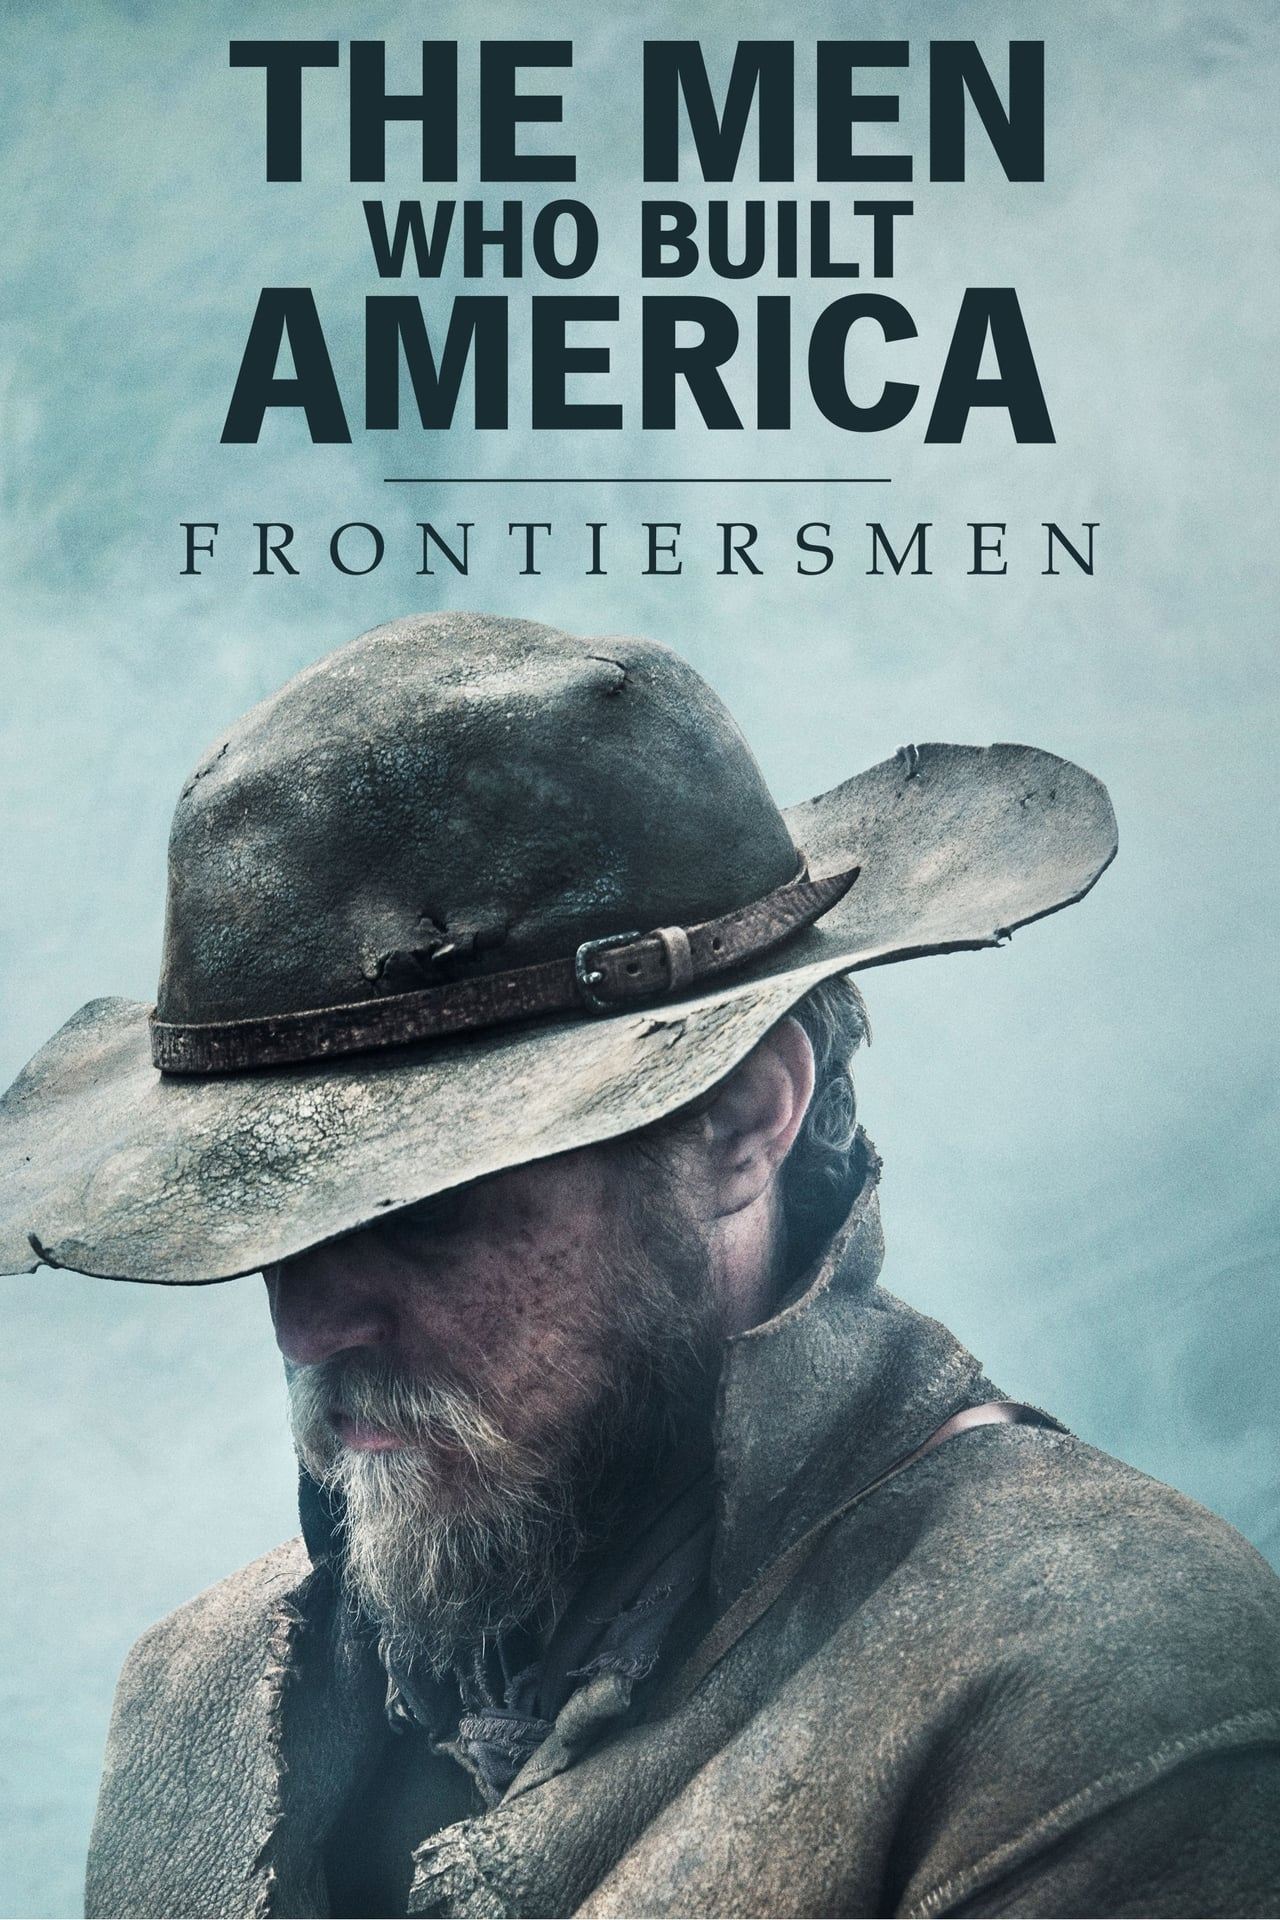 The Men Who Built America Frontiersmen Wiki Synopsis